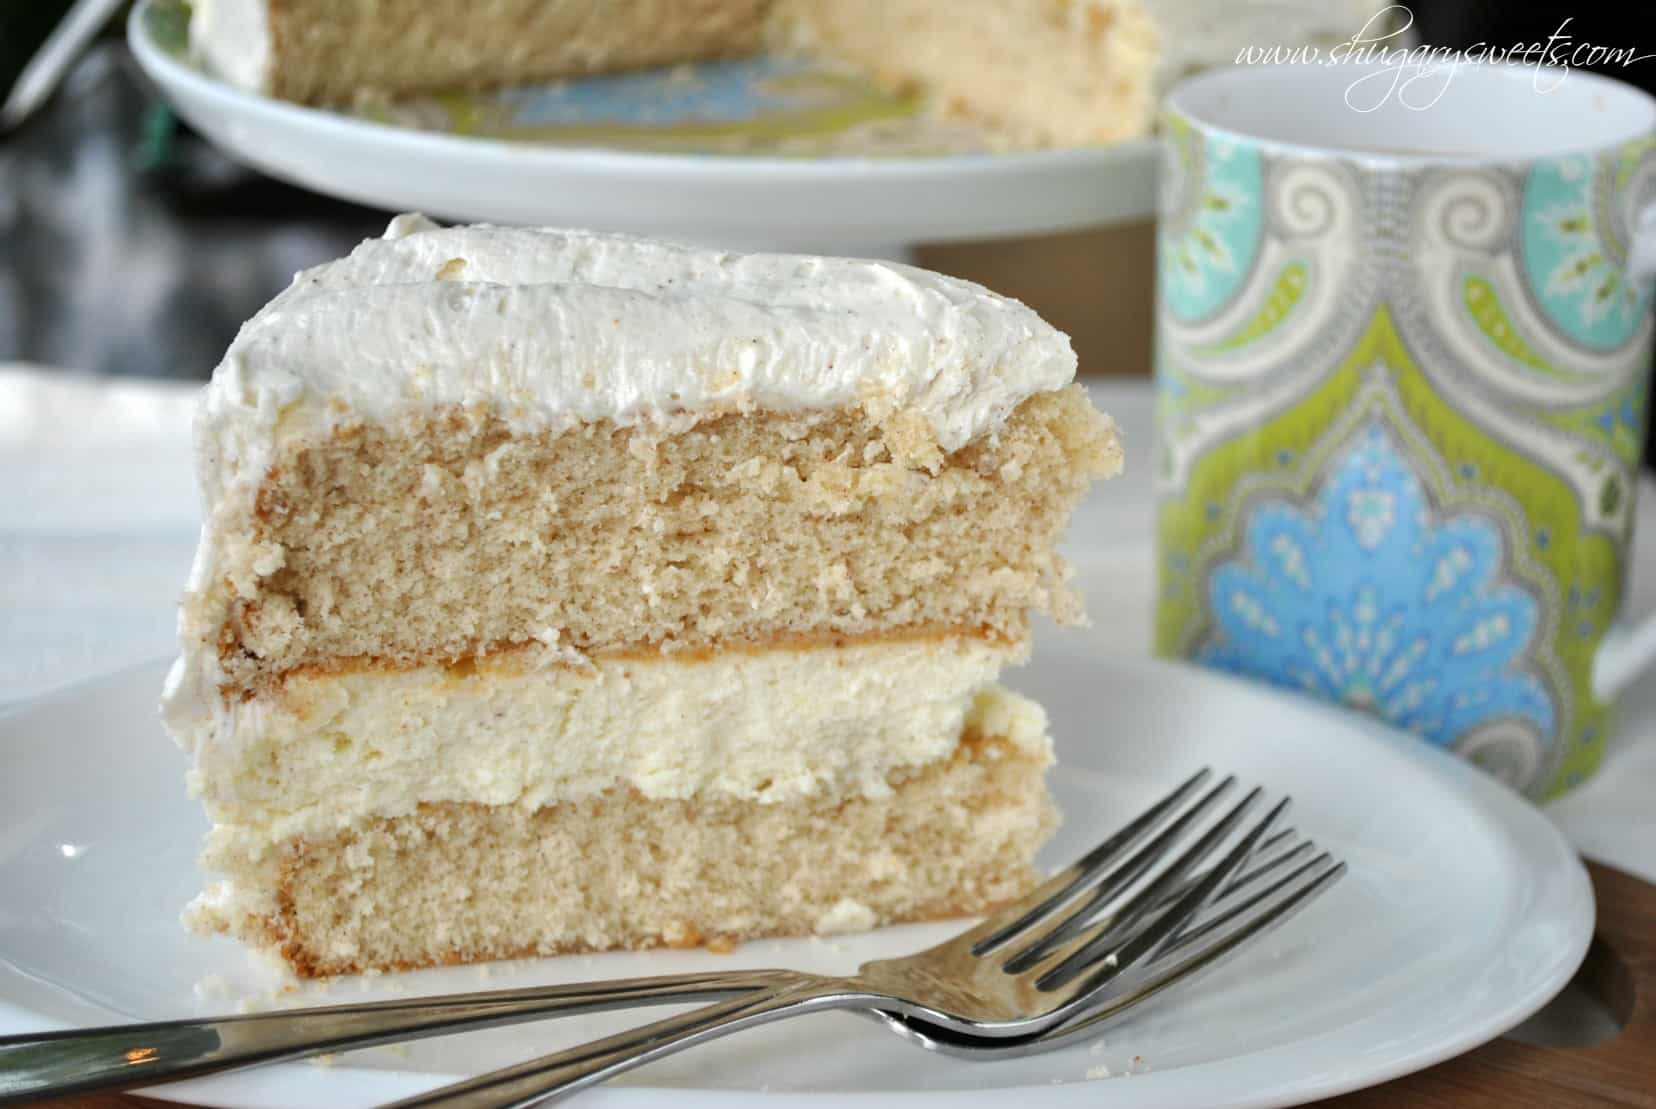 Eggnog Cheesecake Cake Two Layers Of Spice Cake From Scratch With A